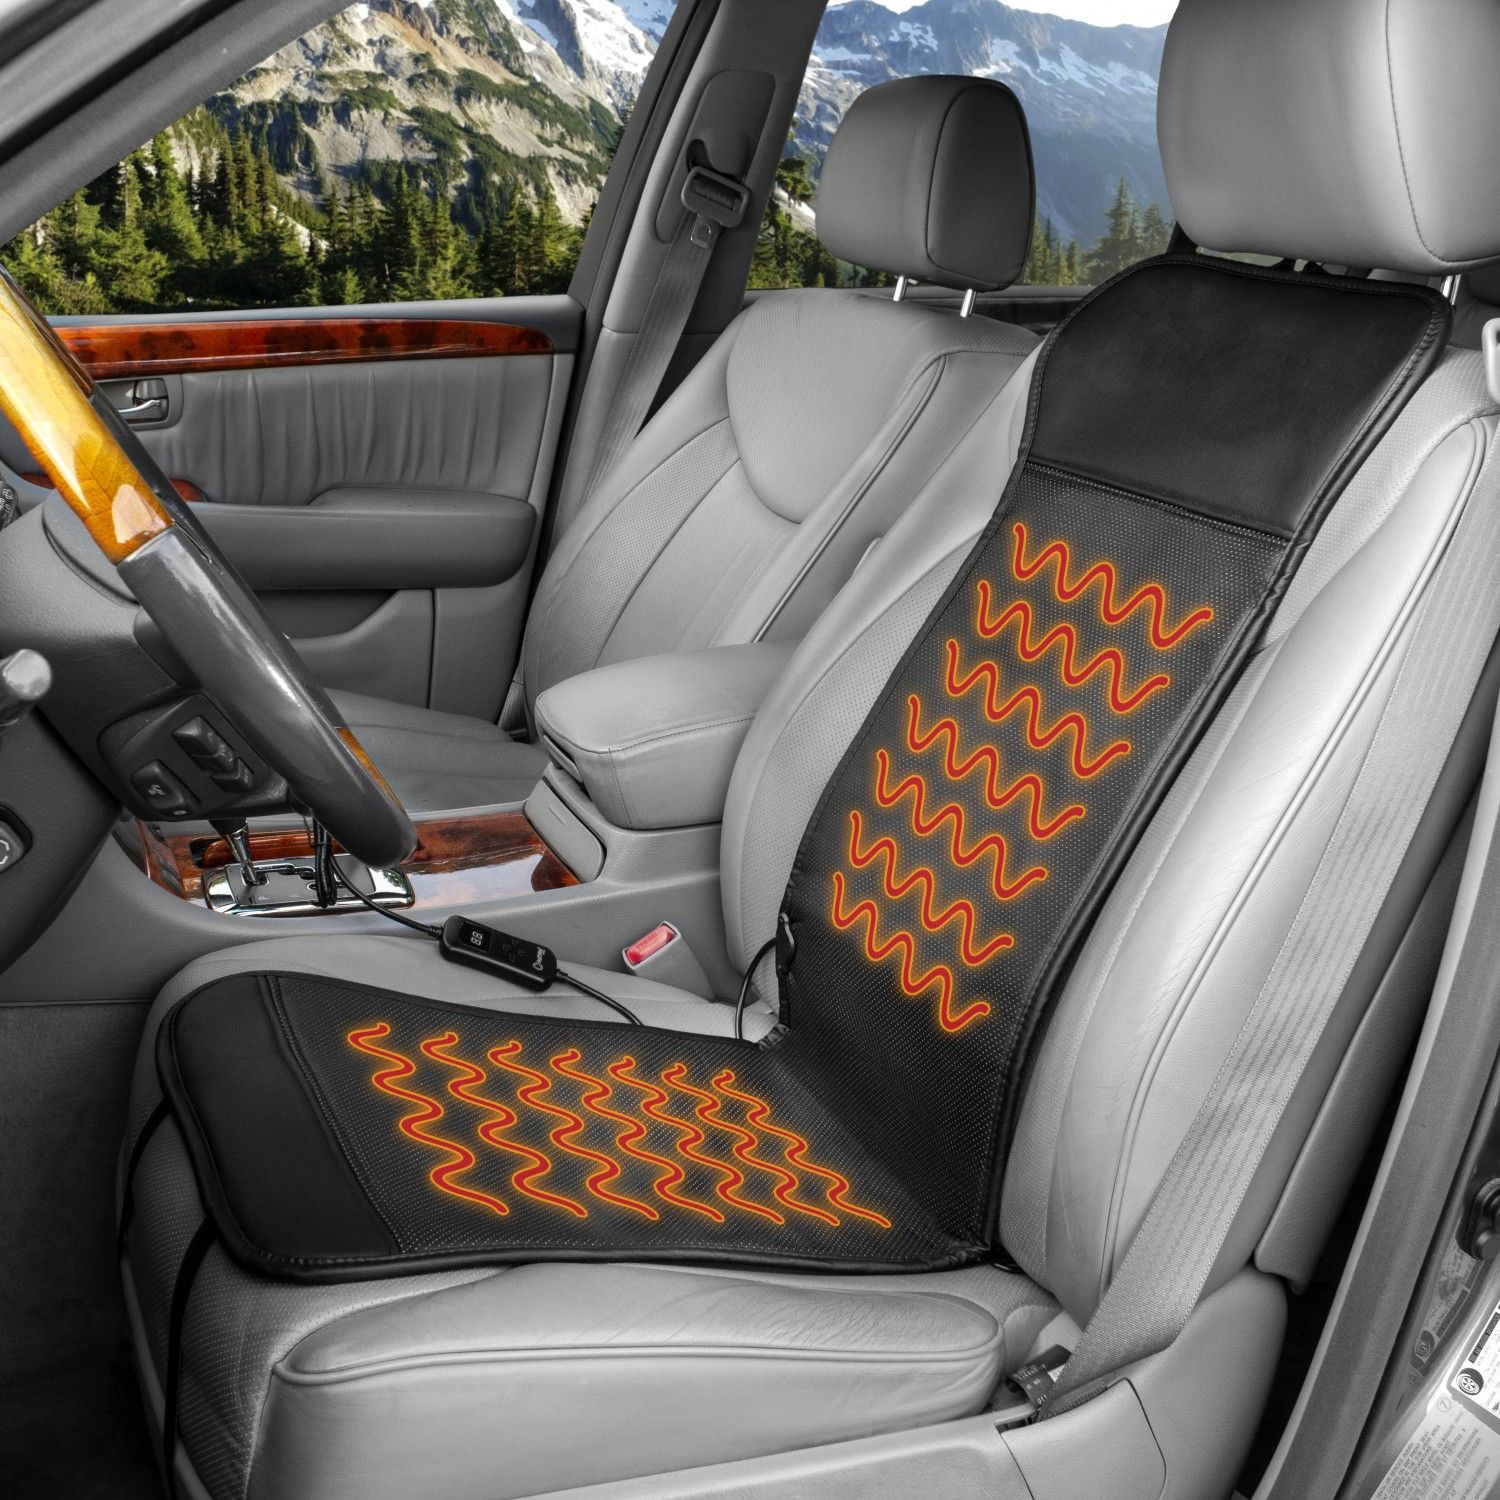 Deluxe sport Heated Seat Cushion Wagan Tech Healthmate